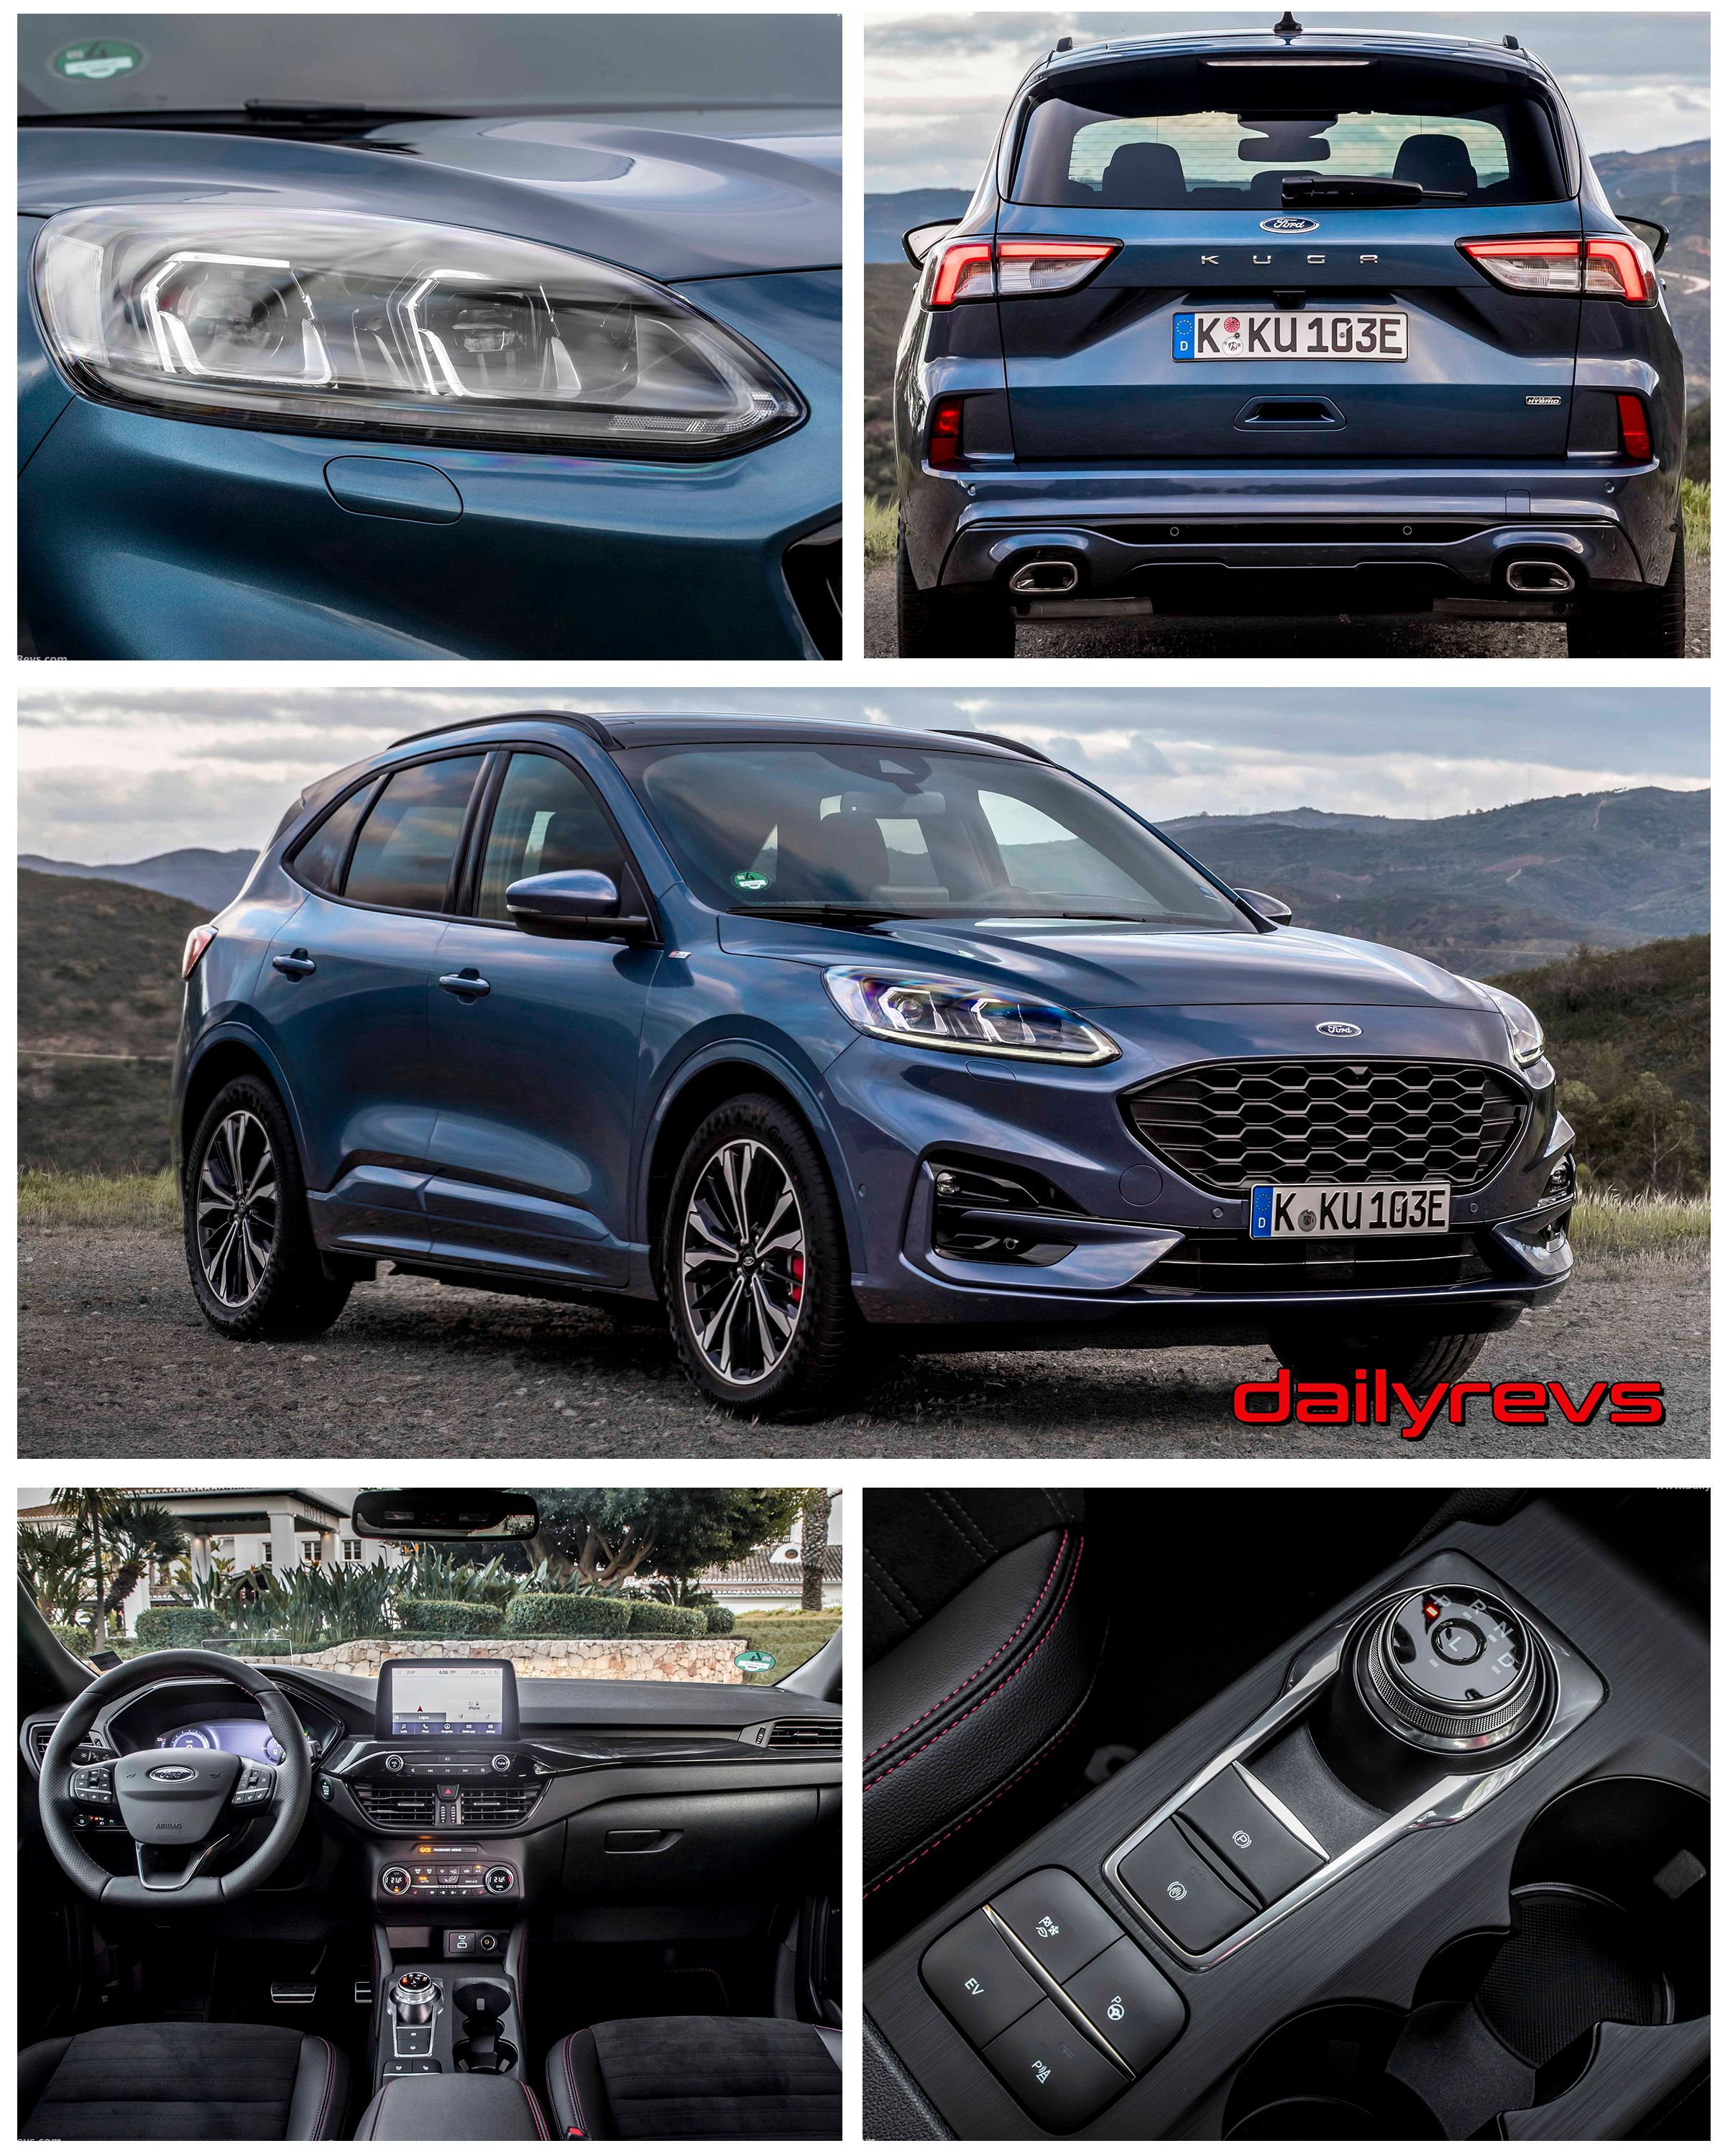 2020 Ford Kuga St Line Phev Dailyrevs Com In 2020 Ford Kuga Ford Ford Ranger